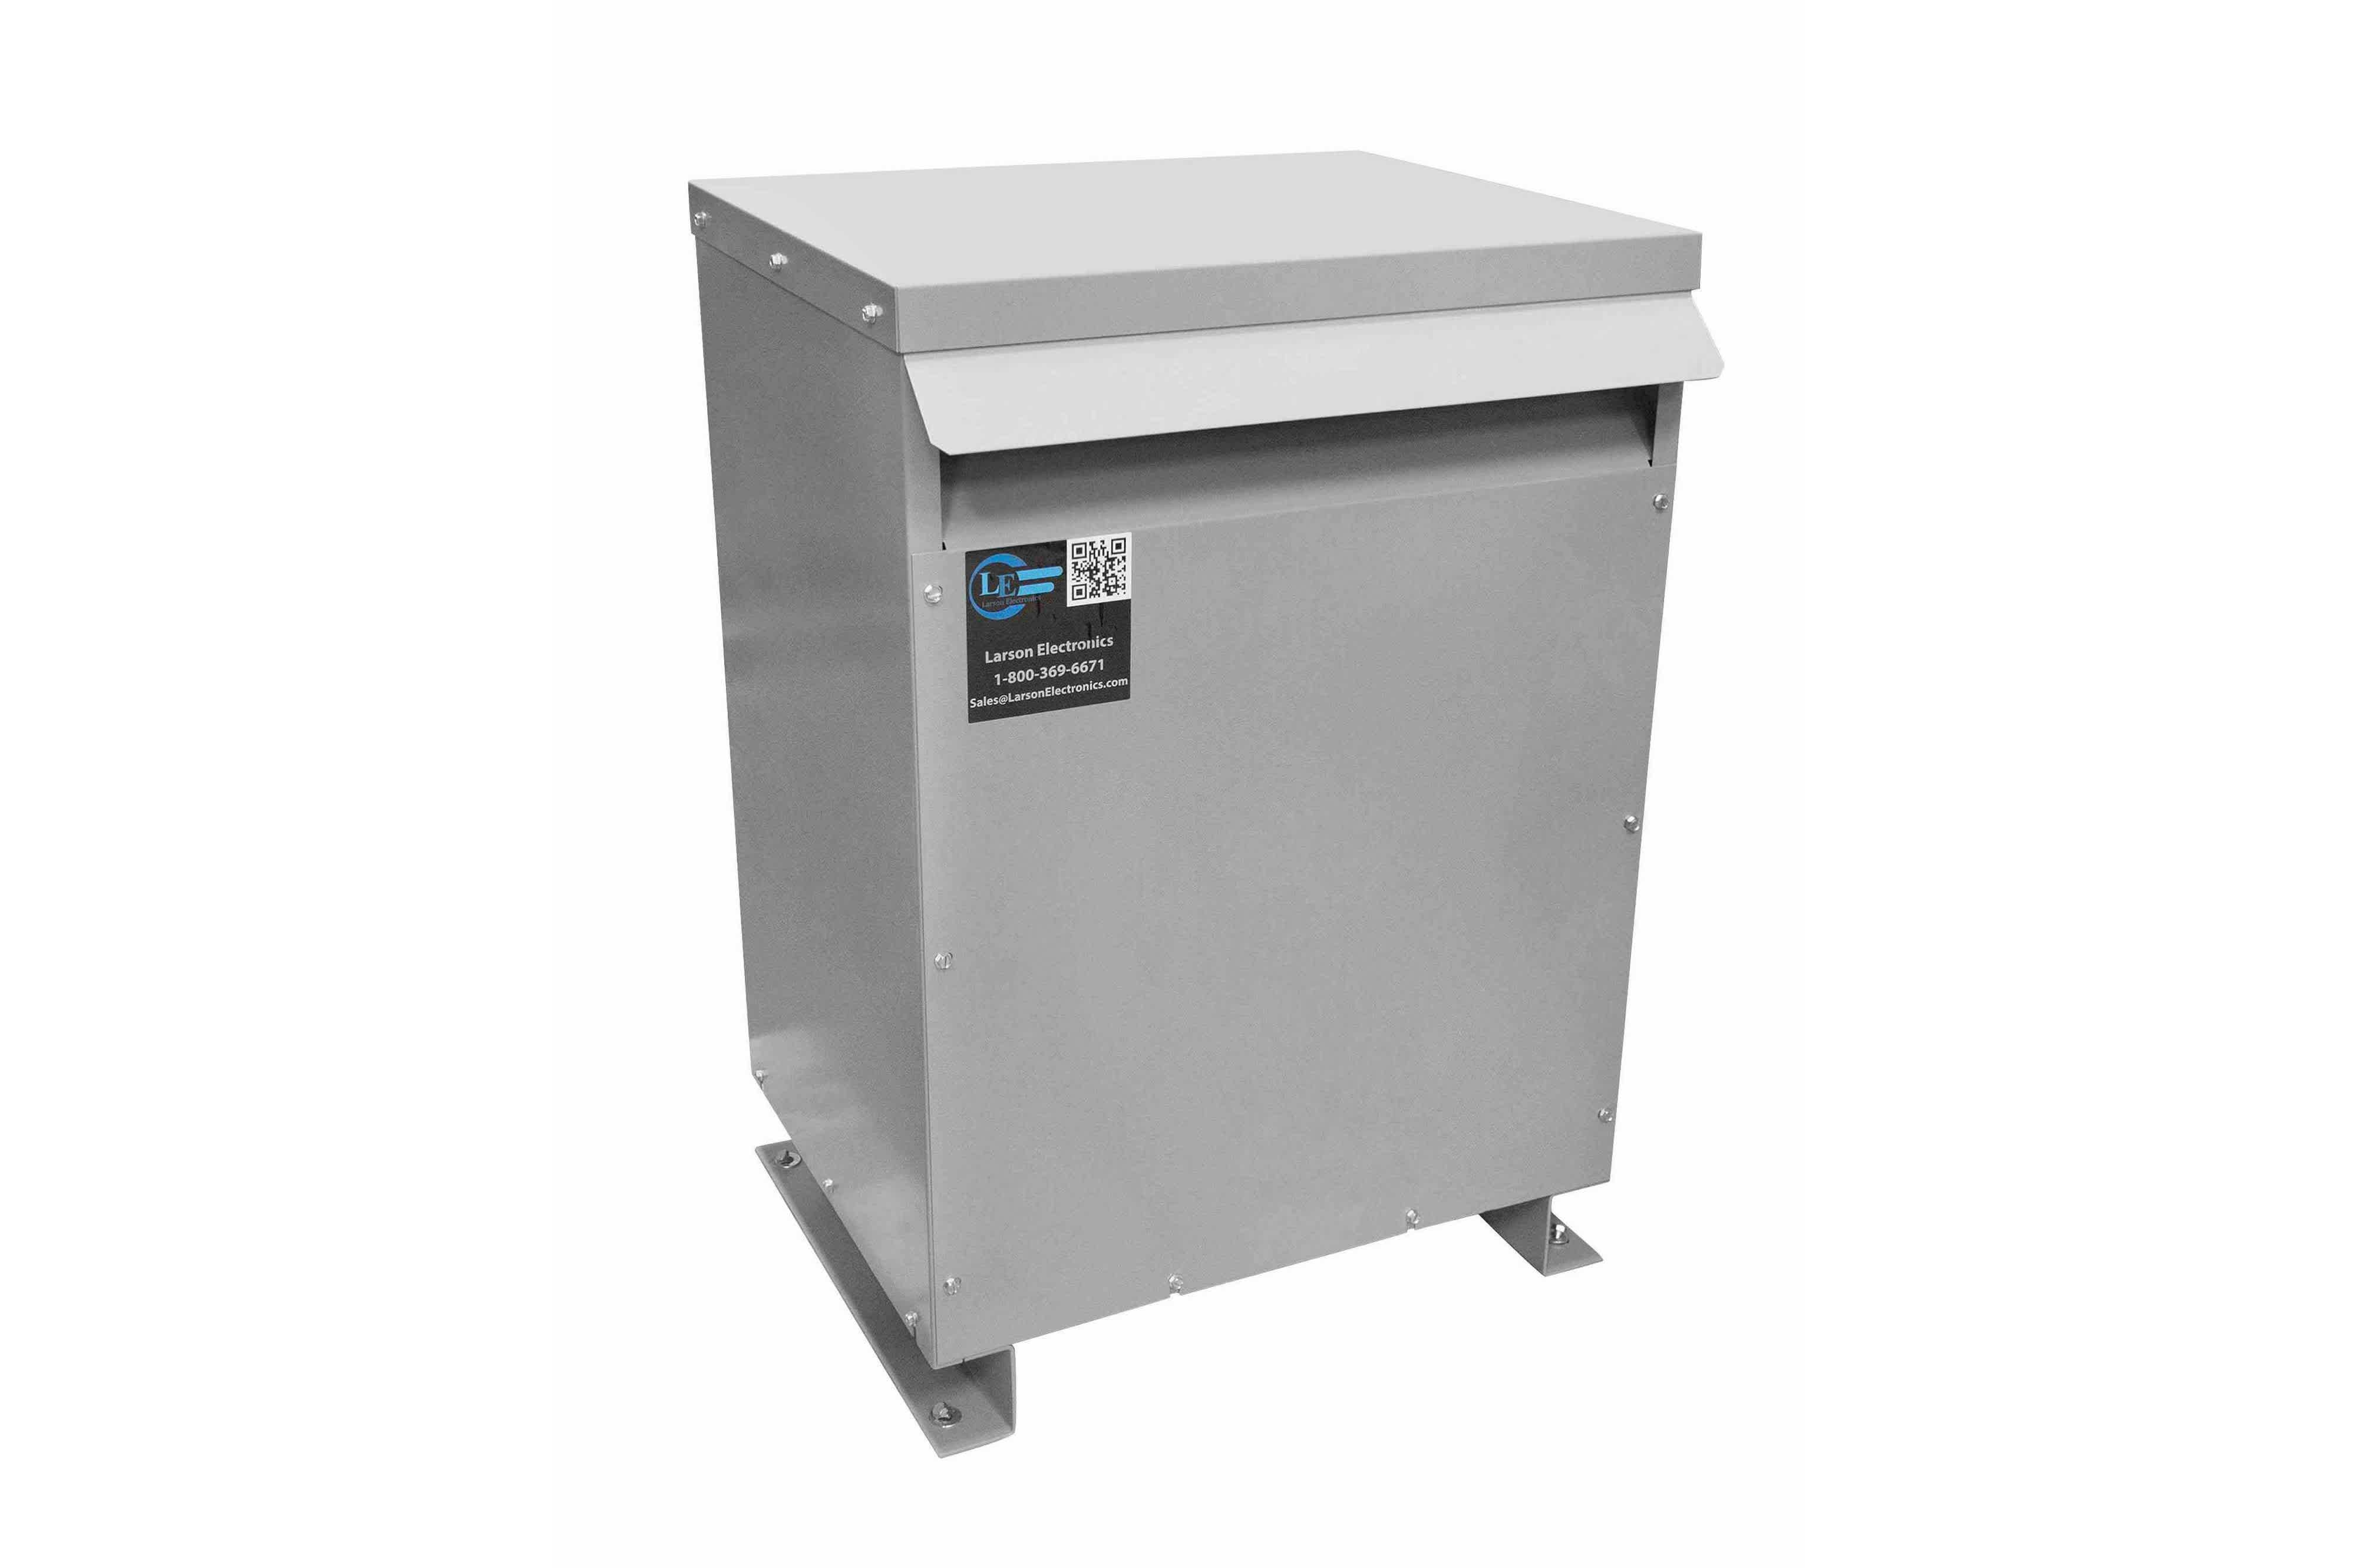 125 kVA 3PH Isolation Transformer, 480V Wye Primary, 600Y/347 Wye-N Secondary, N3R, Ventilated, 60 Hz